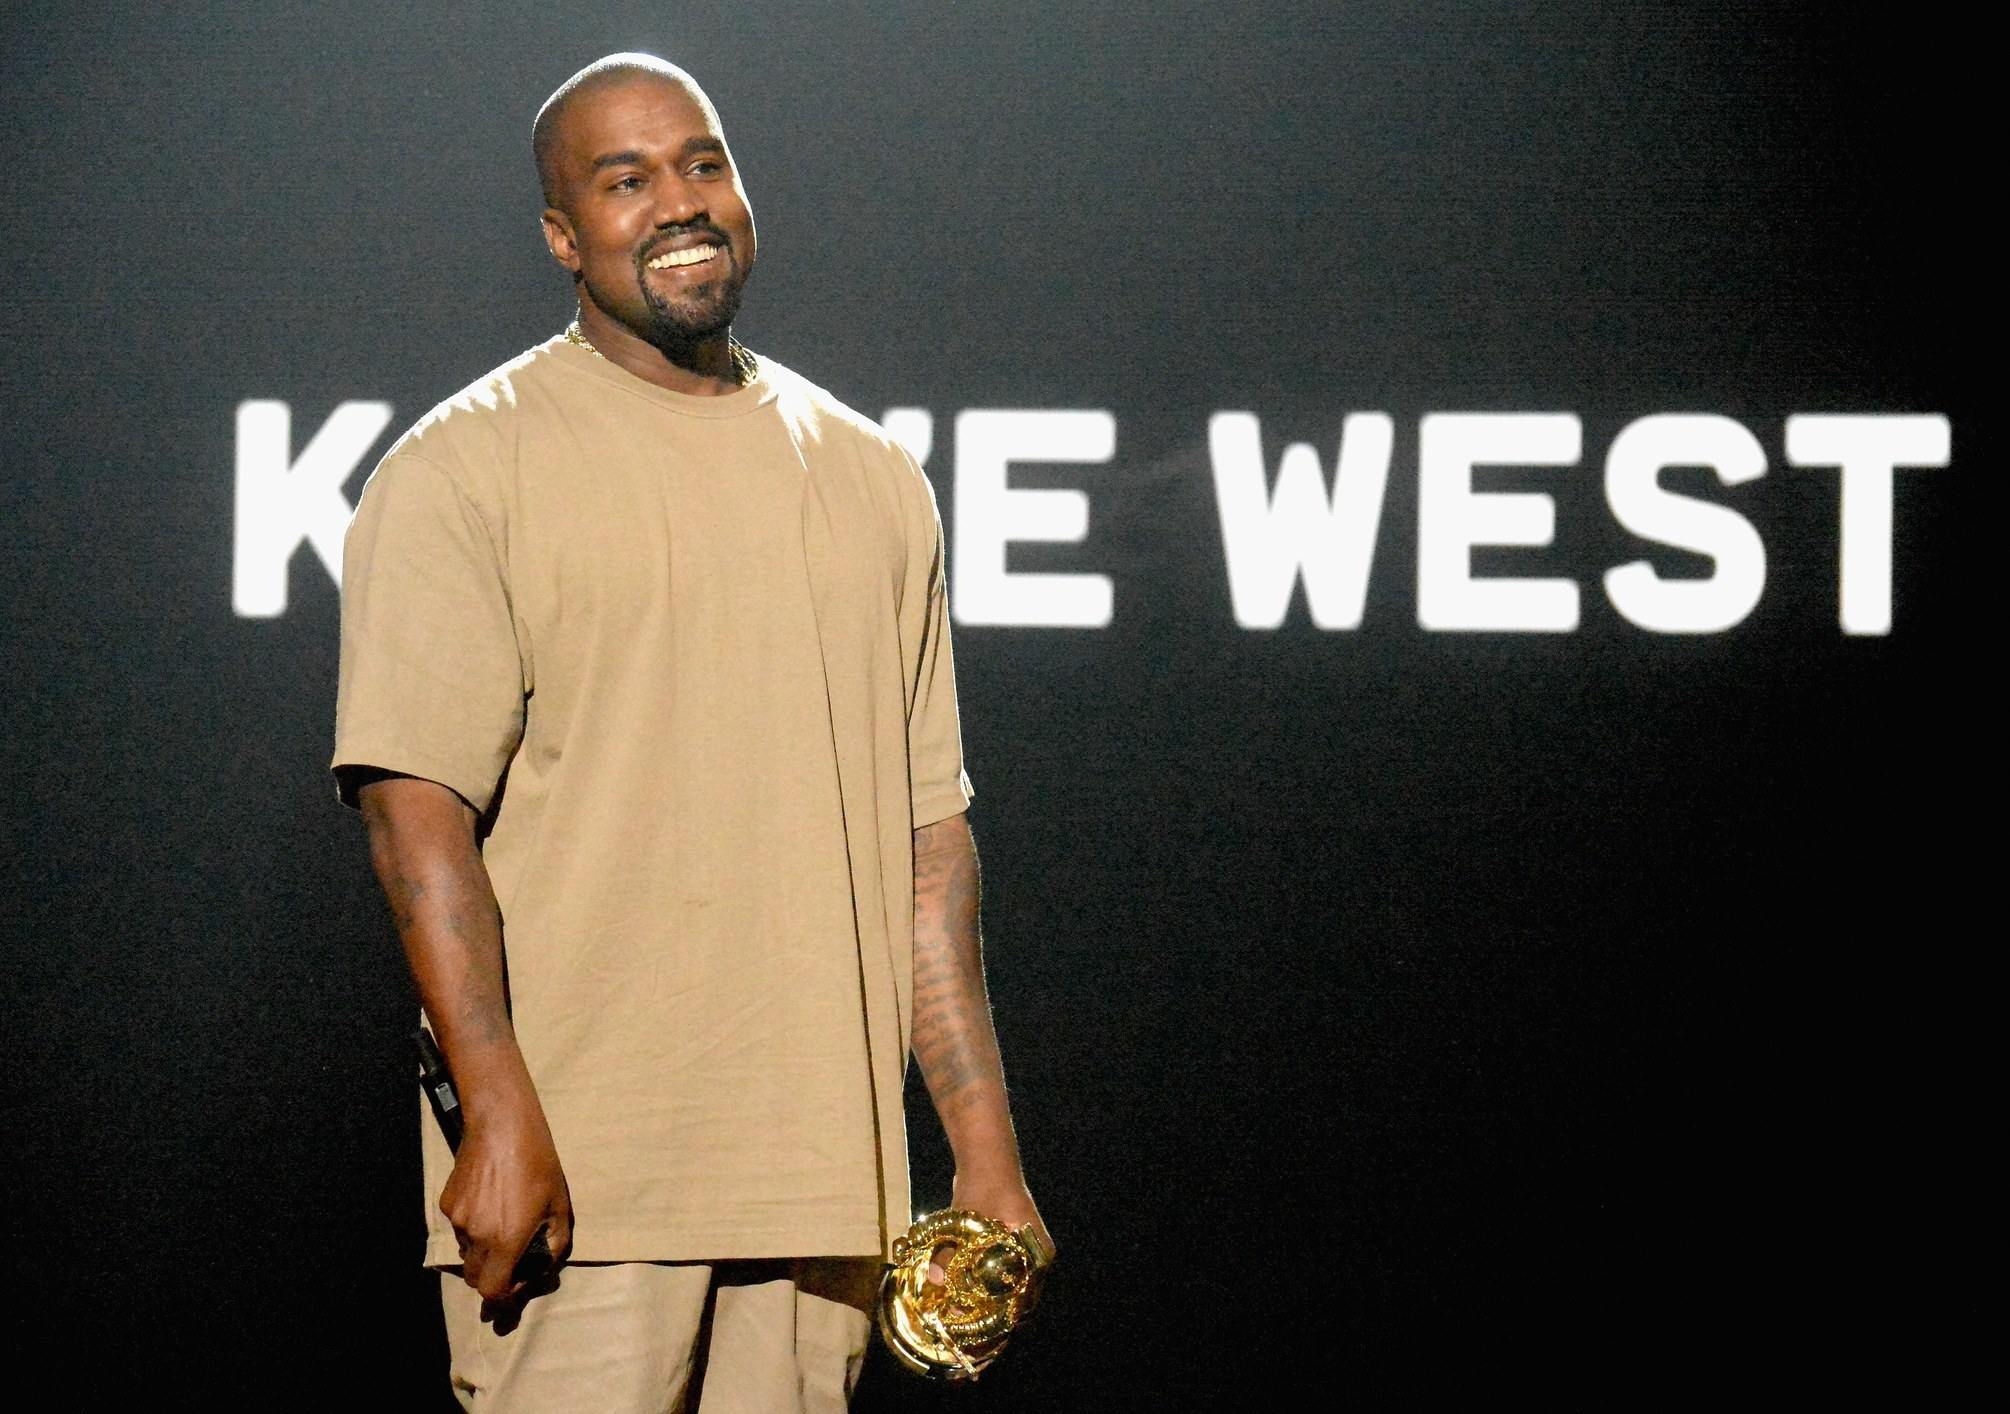 Kanye West wearing an all brown outfit